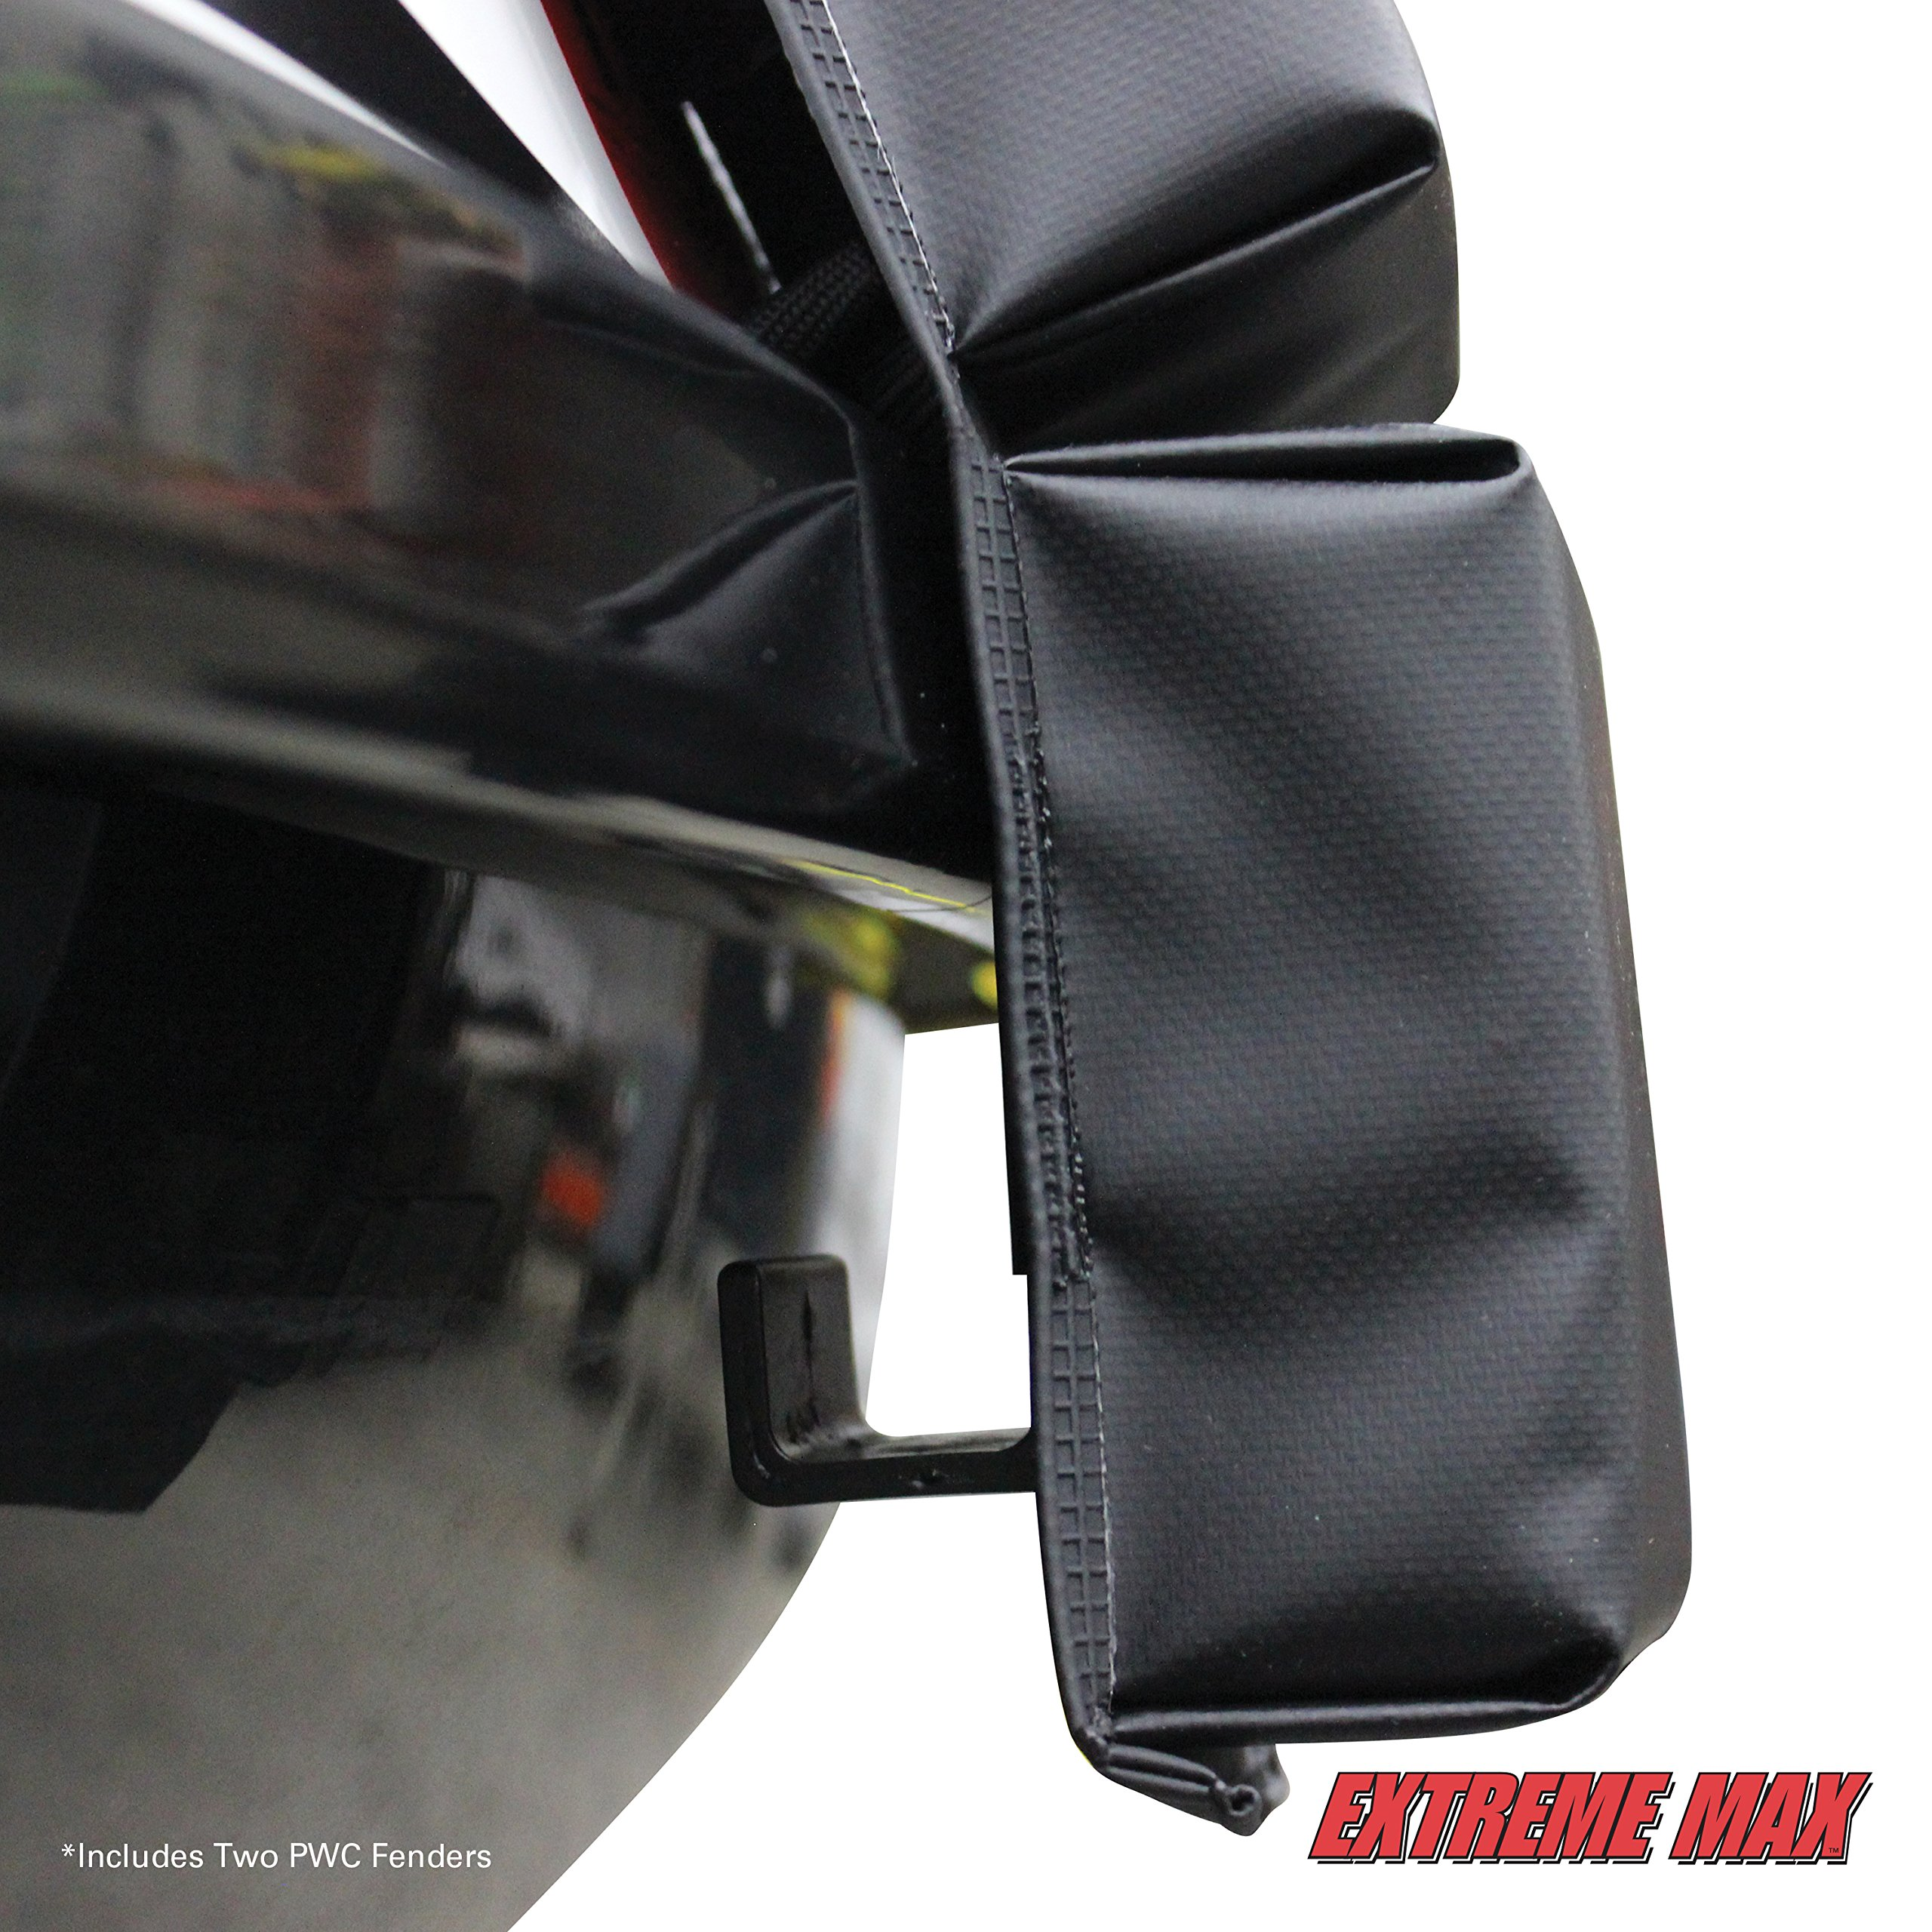 Extreme Max 3006.7270 BoatTector PWC Contour Fender Value Pack by Extreme Max (Image #7)